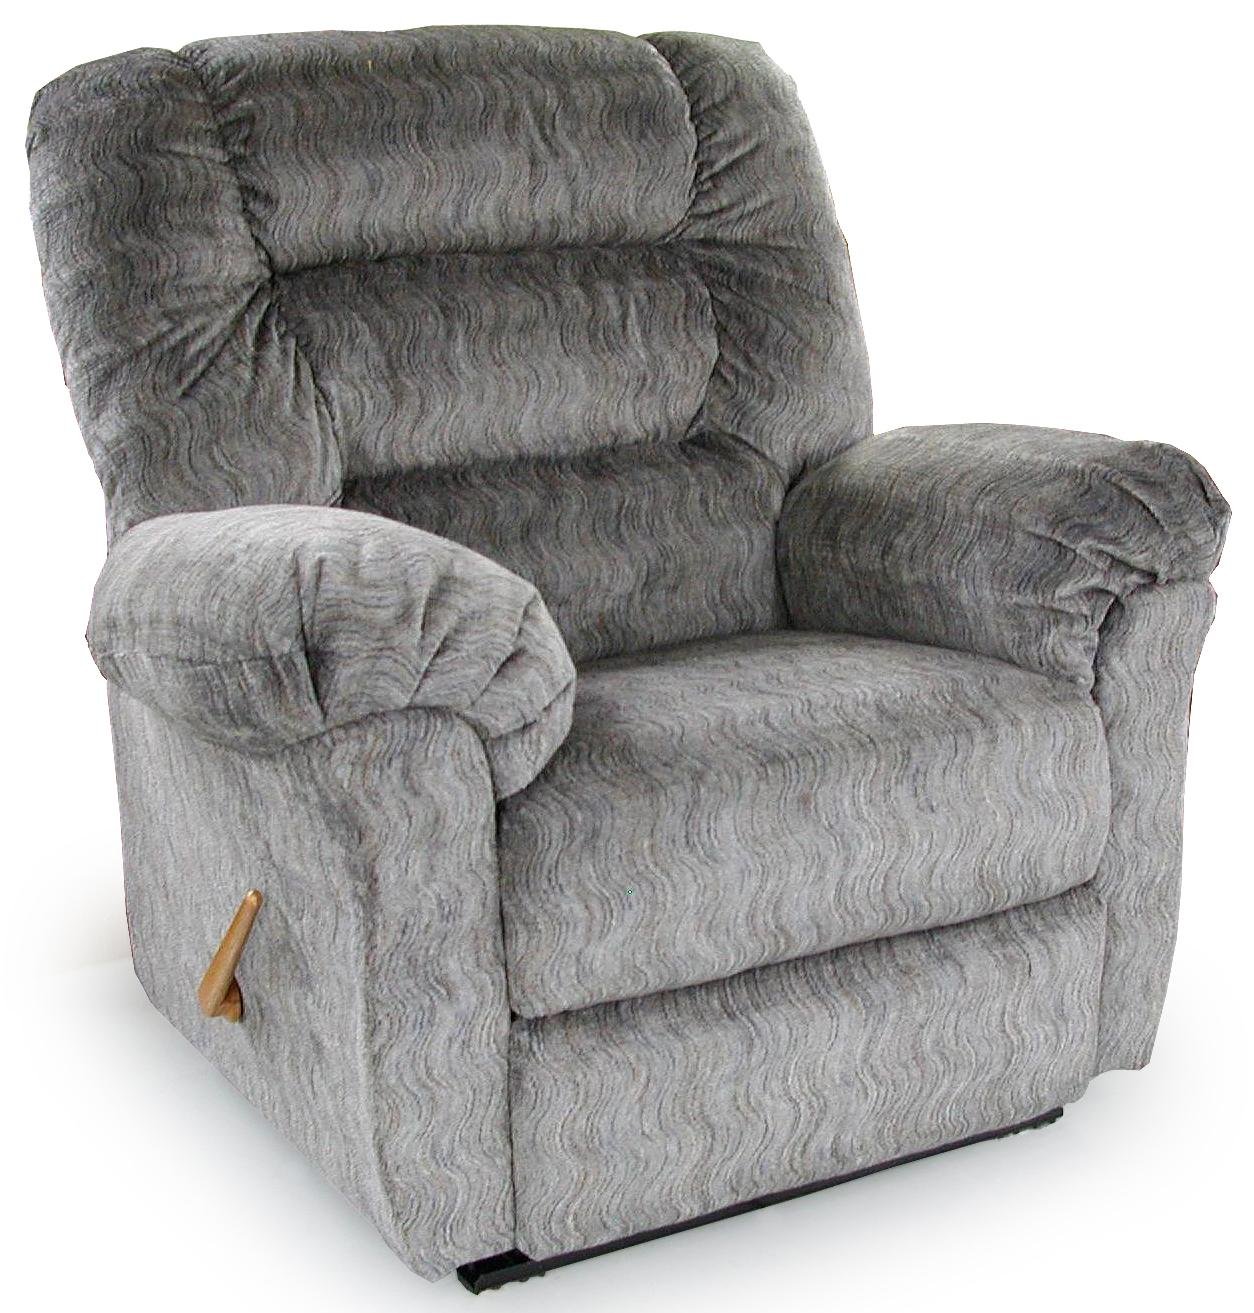 Best Home Furnishings Recliners - The Beast Troubador Rocker Recliner - Item Number 1B57  sc 1 st  Wayside Furniture & Best Home Furnishings Recliners - The Beast Troubador Rocker ... islam-shia.org